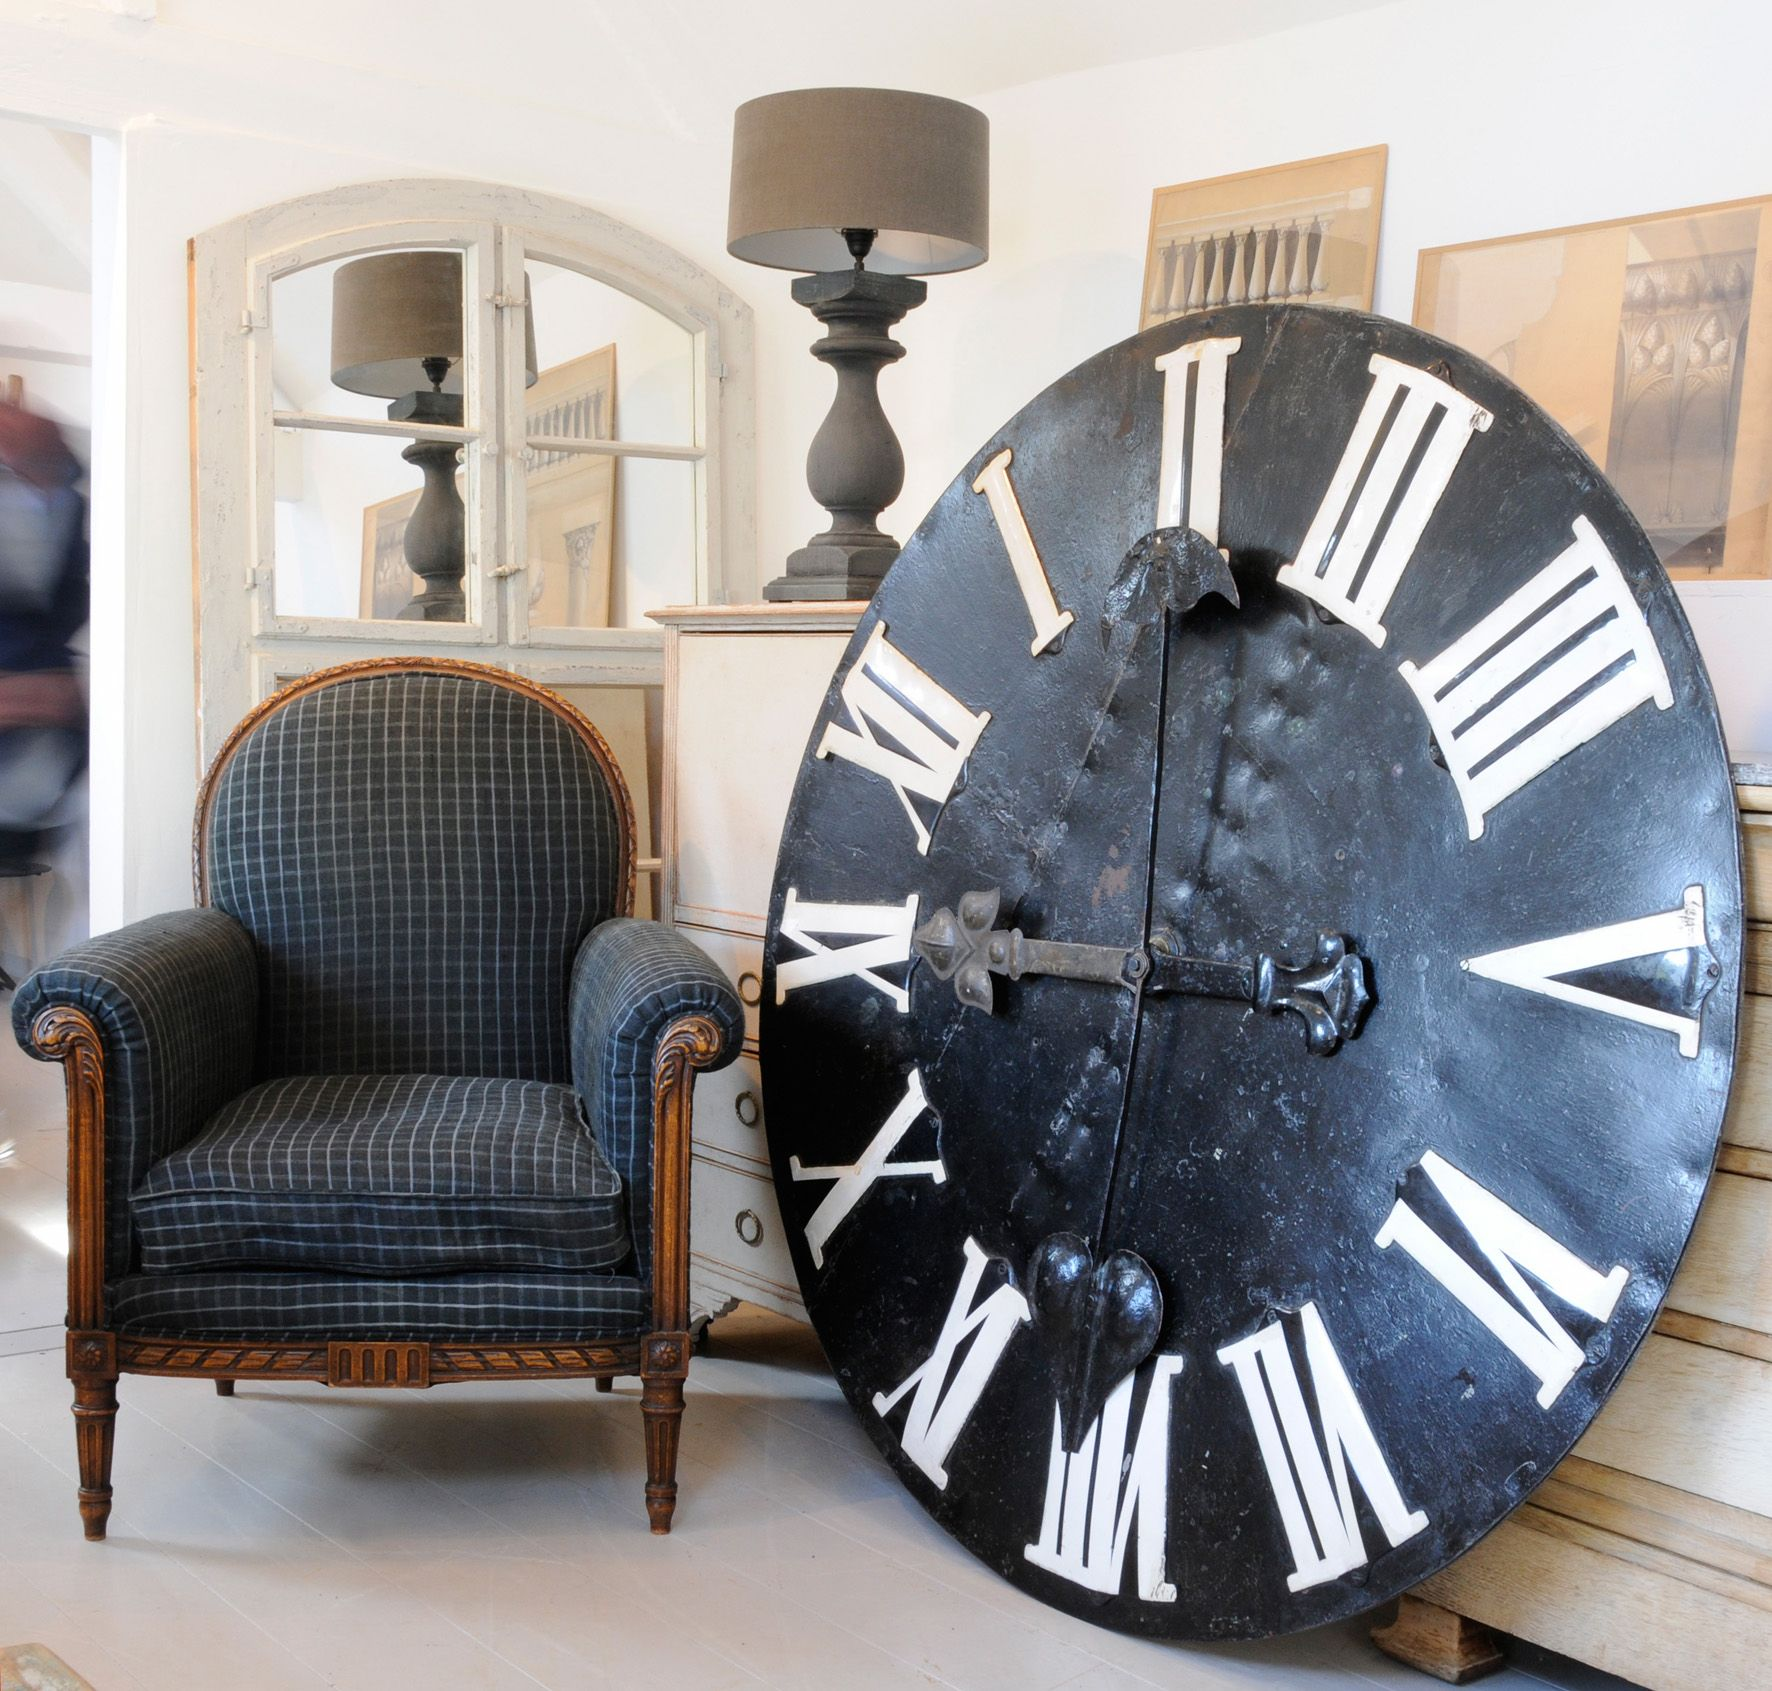 Original Clock Face And French Chair Tic Toc Clocks Pinterest  # Muebles Tic Toc